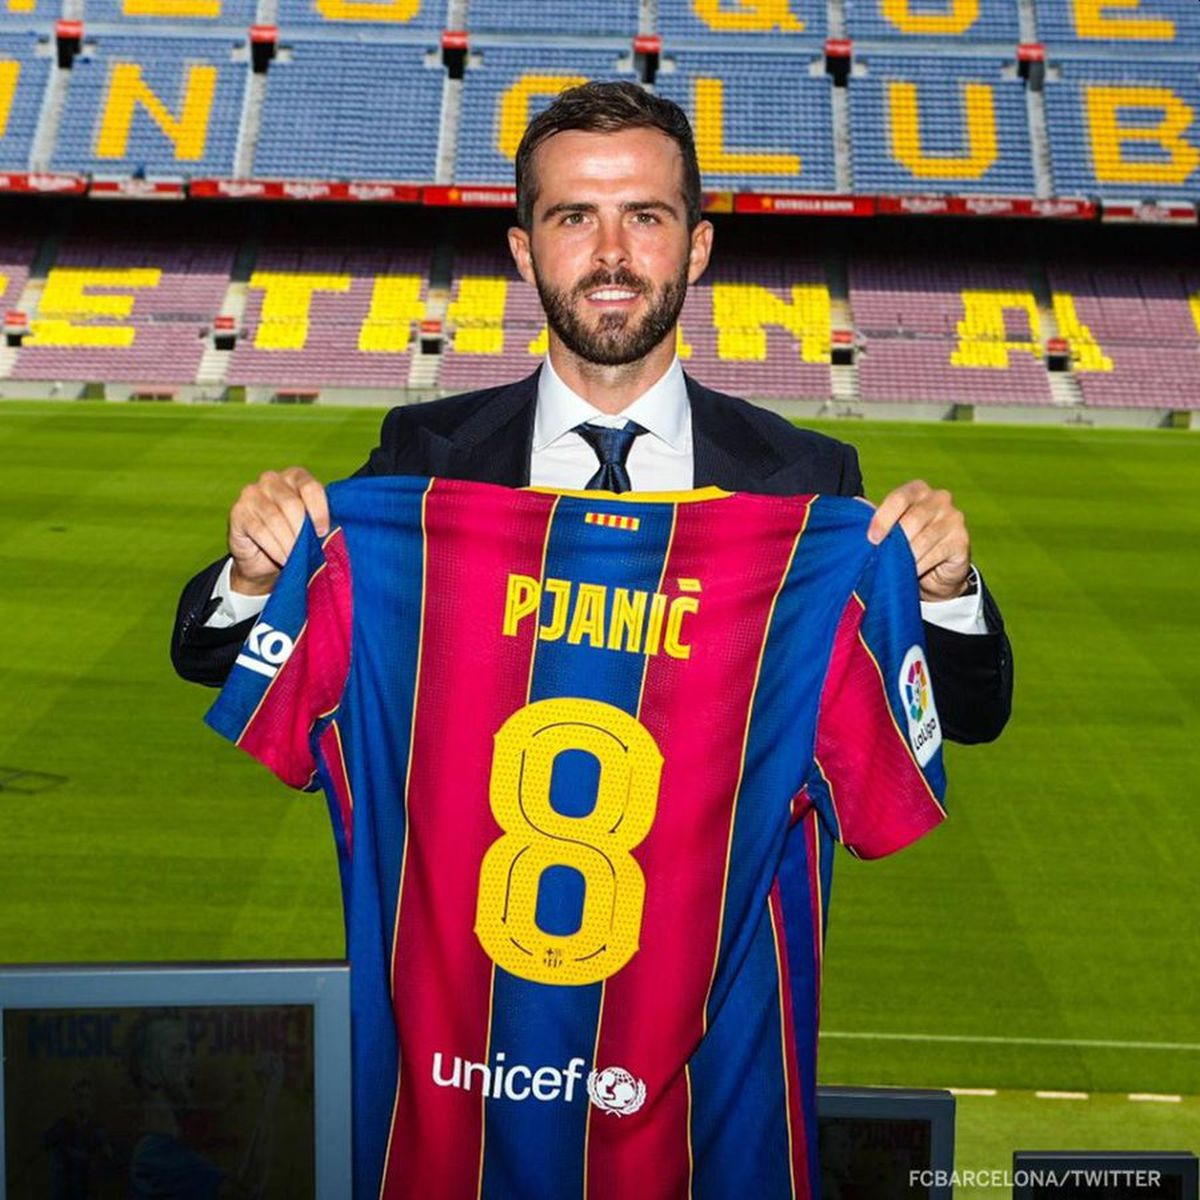 Miralem Pjanic joined Barcelona from Juventus in June for 65 million euros ($77 million).